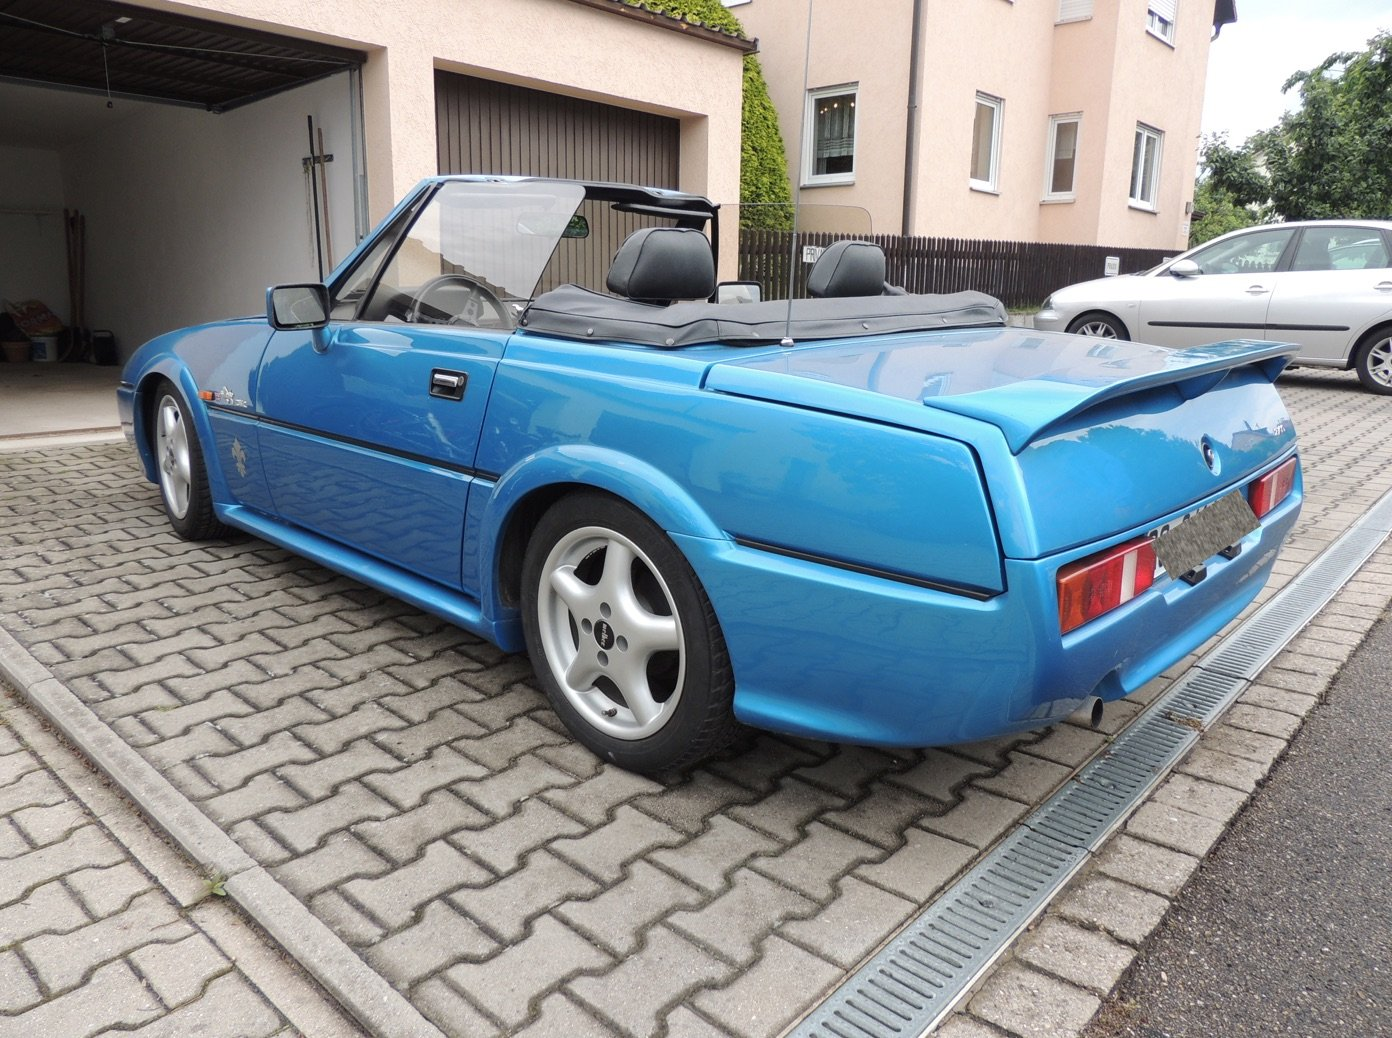 1998 Reliant Scimitar Sabre LHD SOLD (picture 2 of 6)